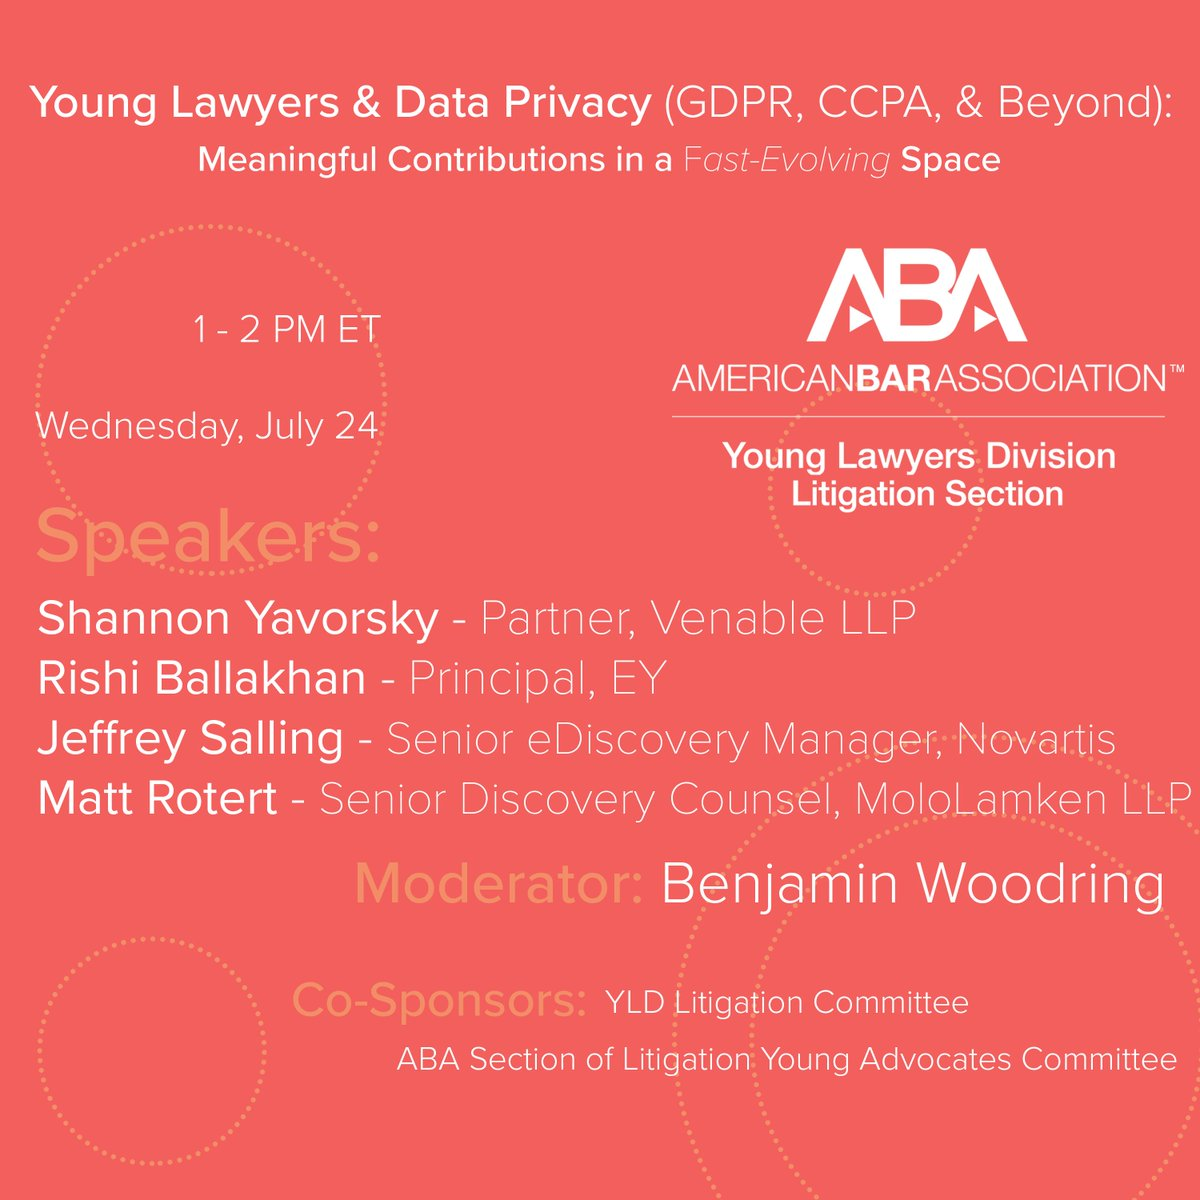 66efa01a4a7 ... Young Lawyers and Data Privacy (GDPR, CCPA, and Beyond): Meaningful  Contributions in a Fast-Evolving Space, 7/24 at 1 pm  http://bit.ly/DataPrivacy724 ...